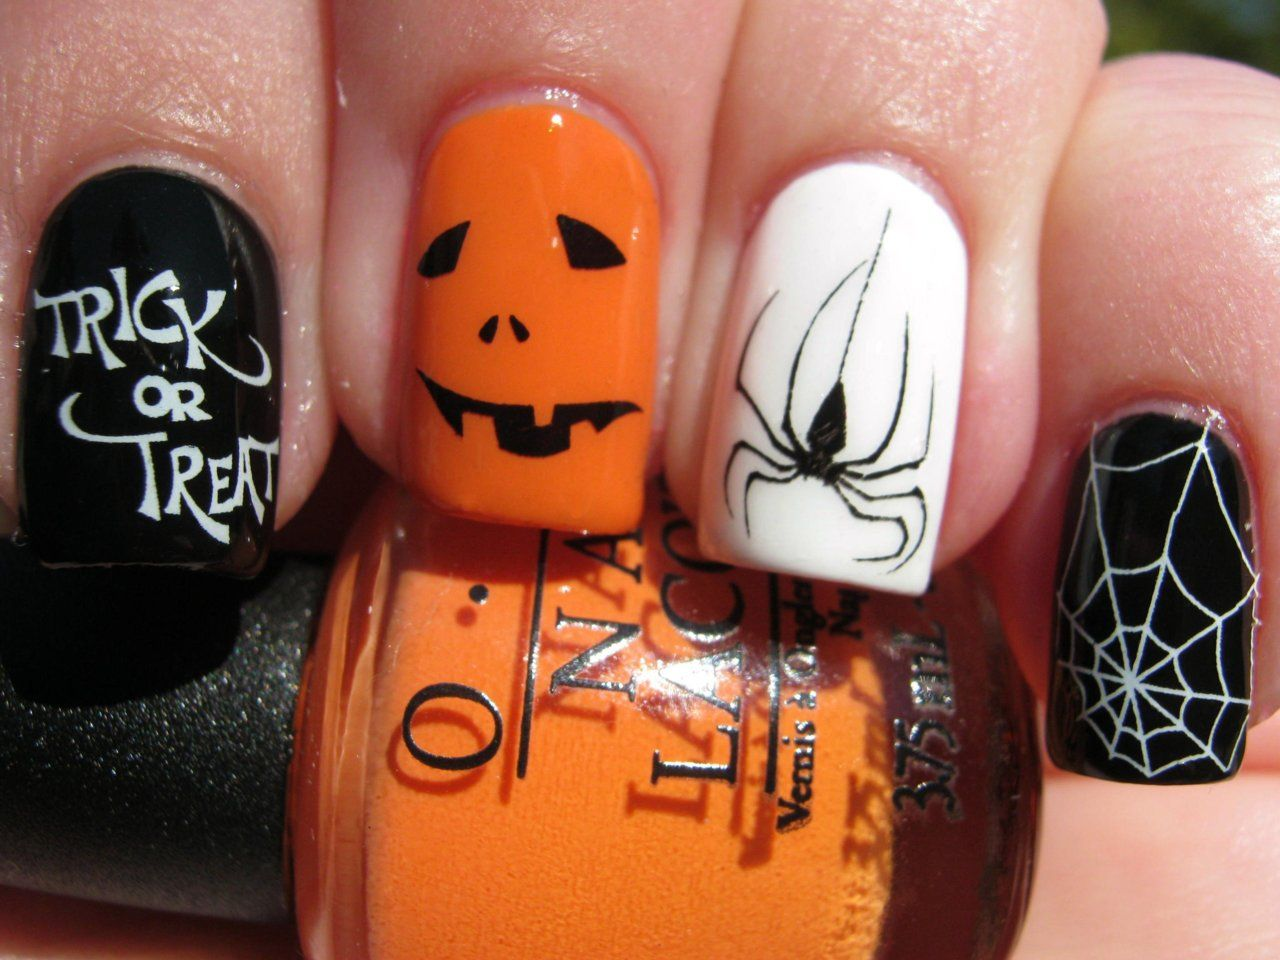 Designs for halloween interesting nail designs for halloween designs for halloween interesting nail designs for halloween simple nail design ideas prinsesfo Choice Image